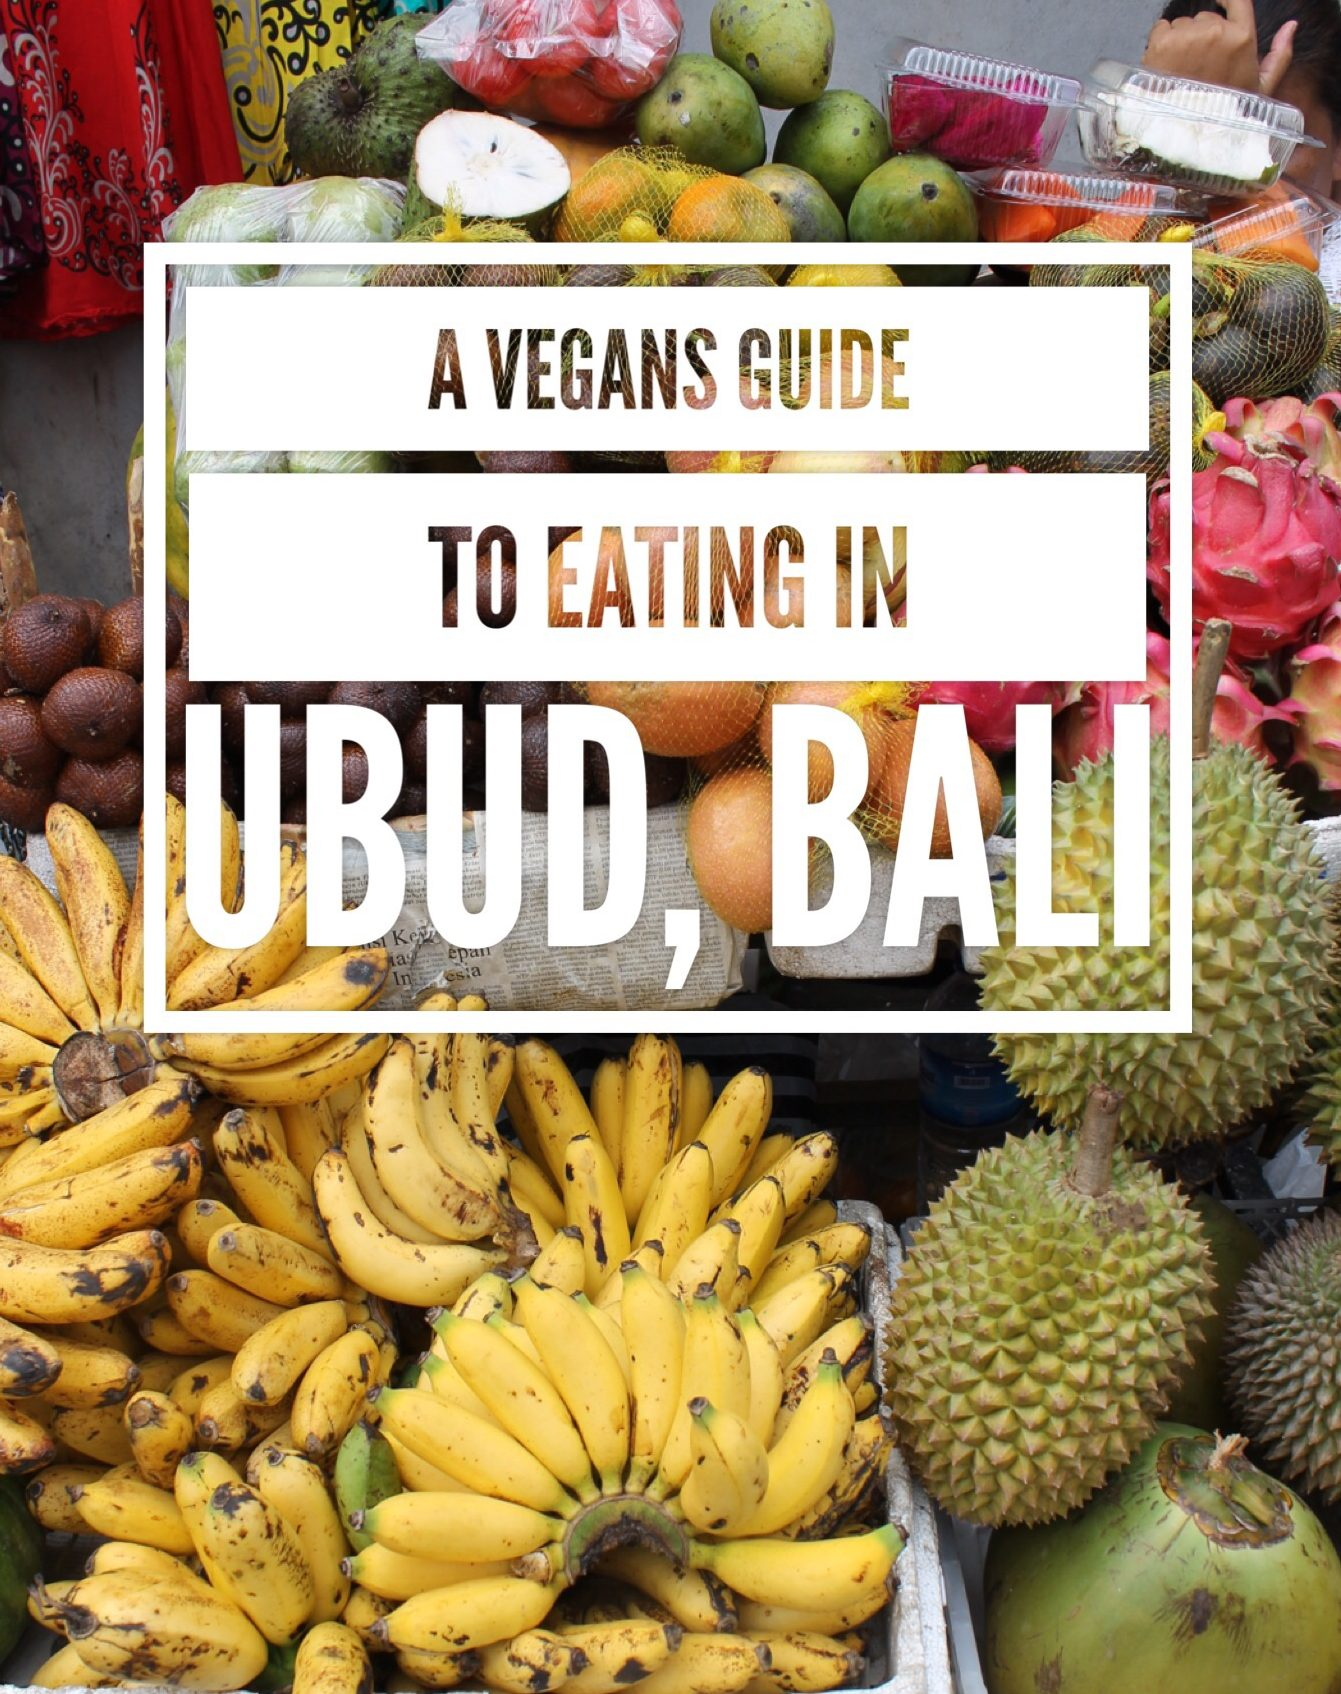 Vegan guide to eating in Ubud Bali